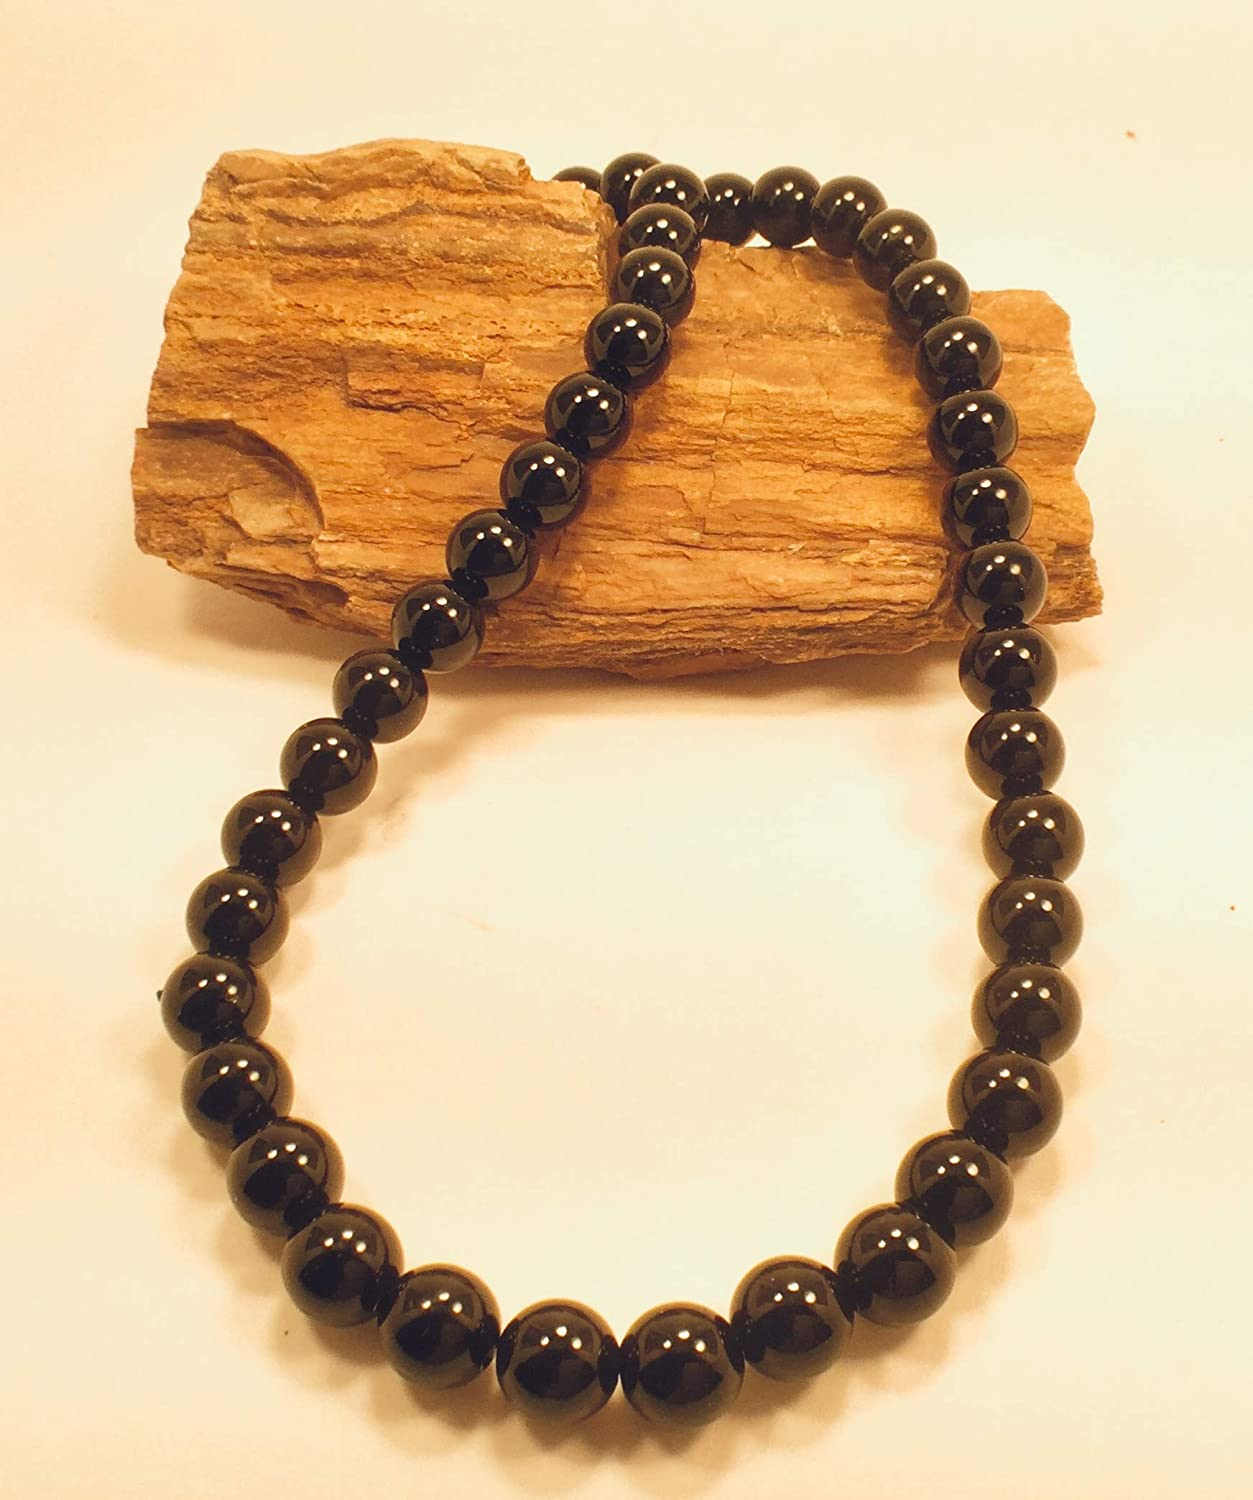 Necklace 8mm Natural Glossy Black Agathe Beads Gemstones Black Aga Chakra /& Reiki Energy healing bracelet Yoga Bracelet Perfect for Jewelry Making Earrings and DIY Jewelry By: Healing Stones /& Crystals co. 45 to 48 beads per strand Good Luck Charm